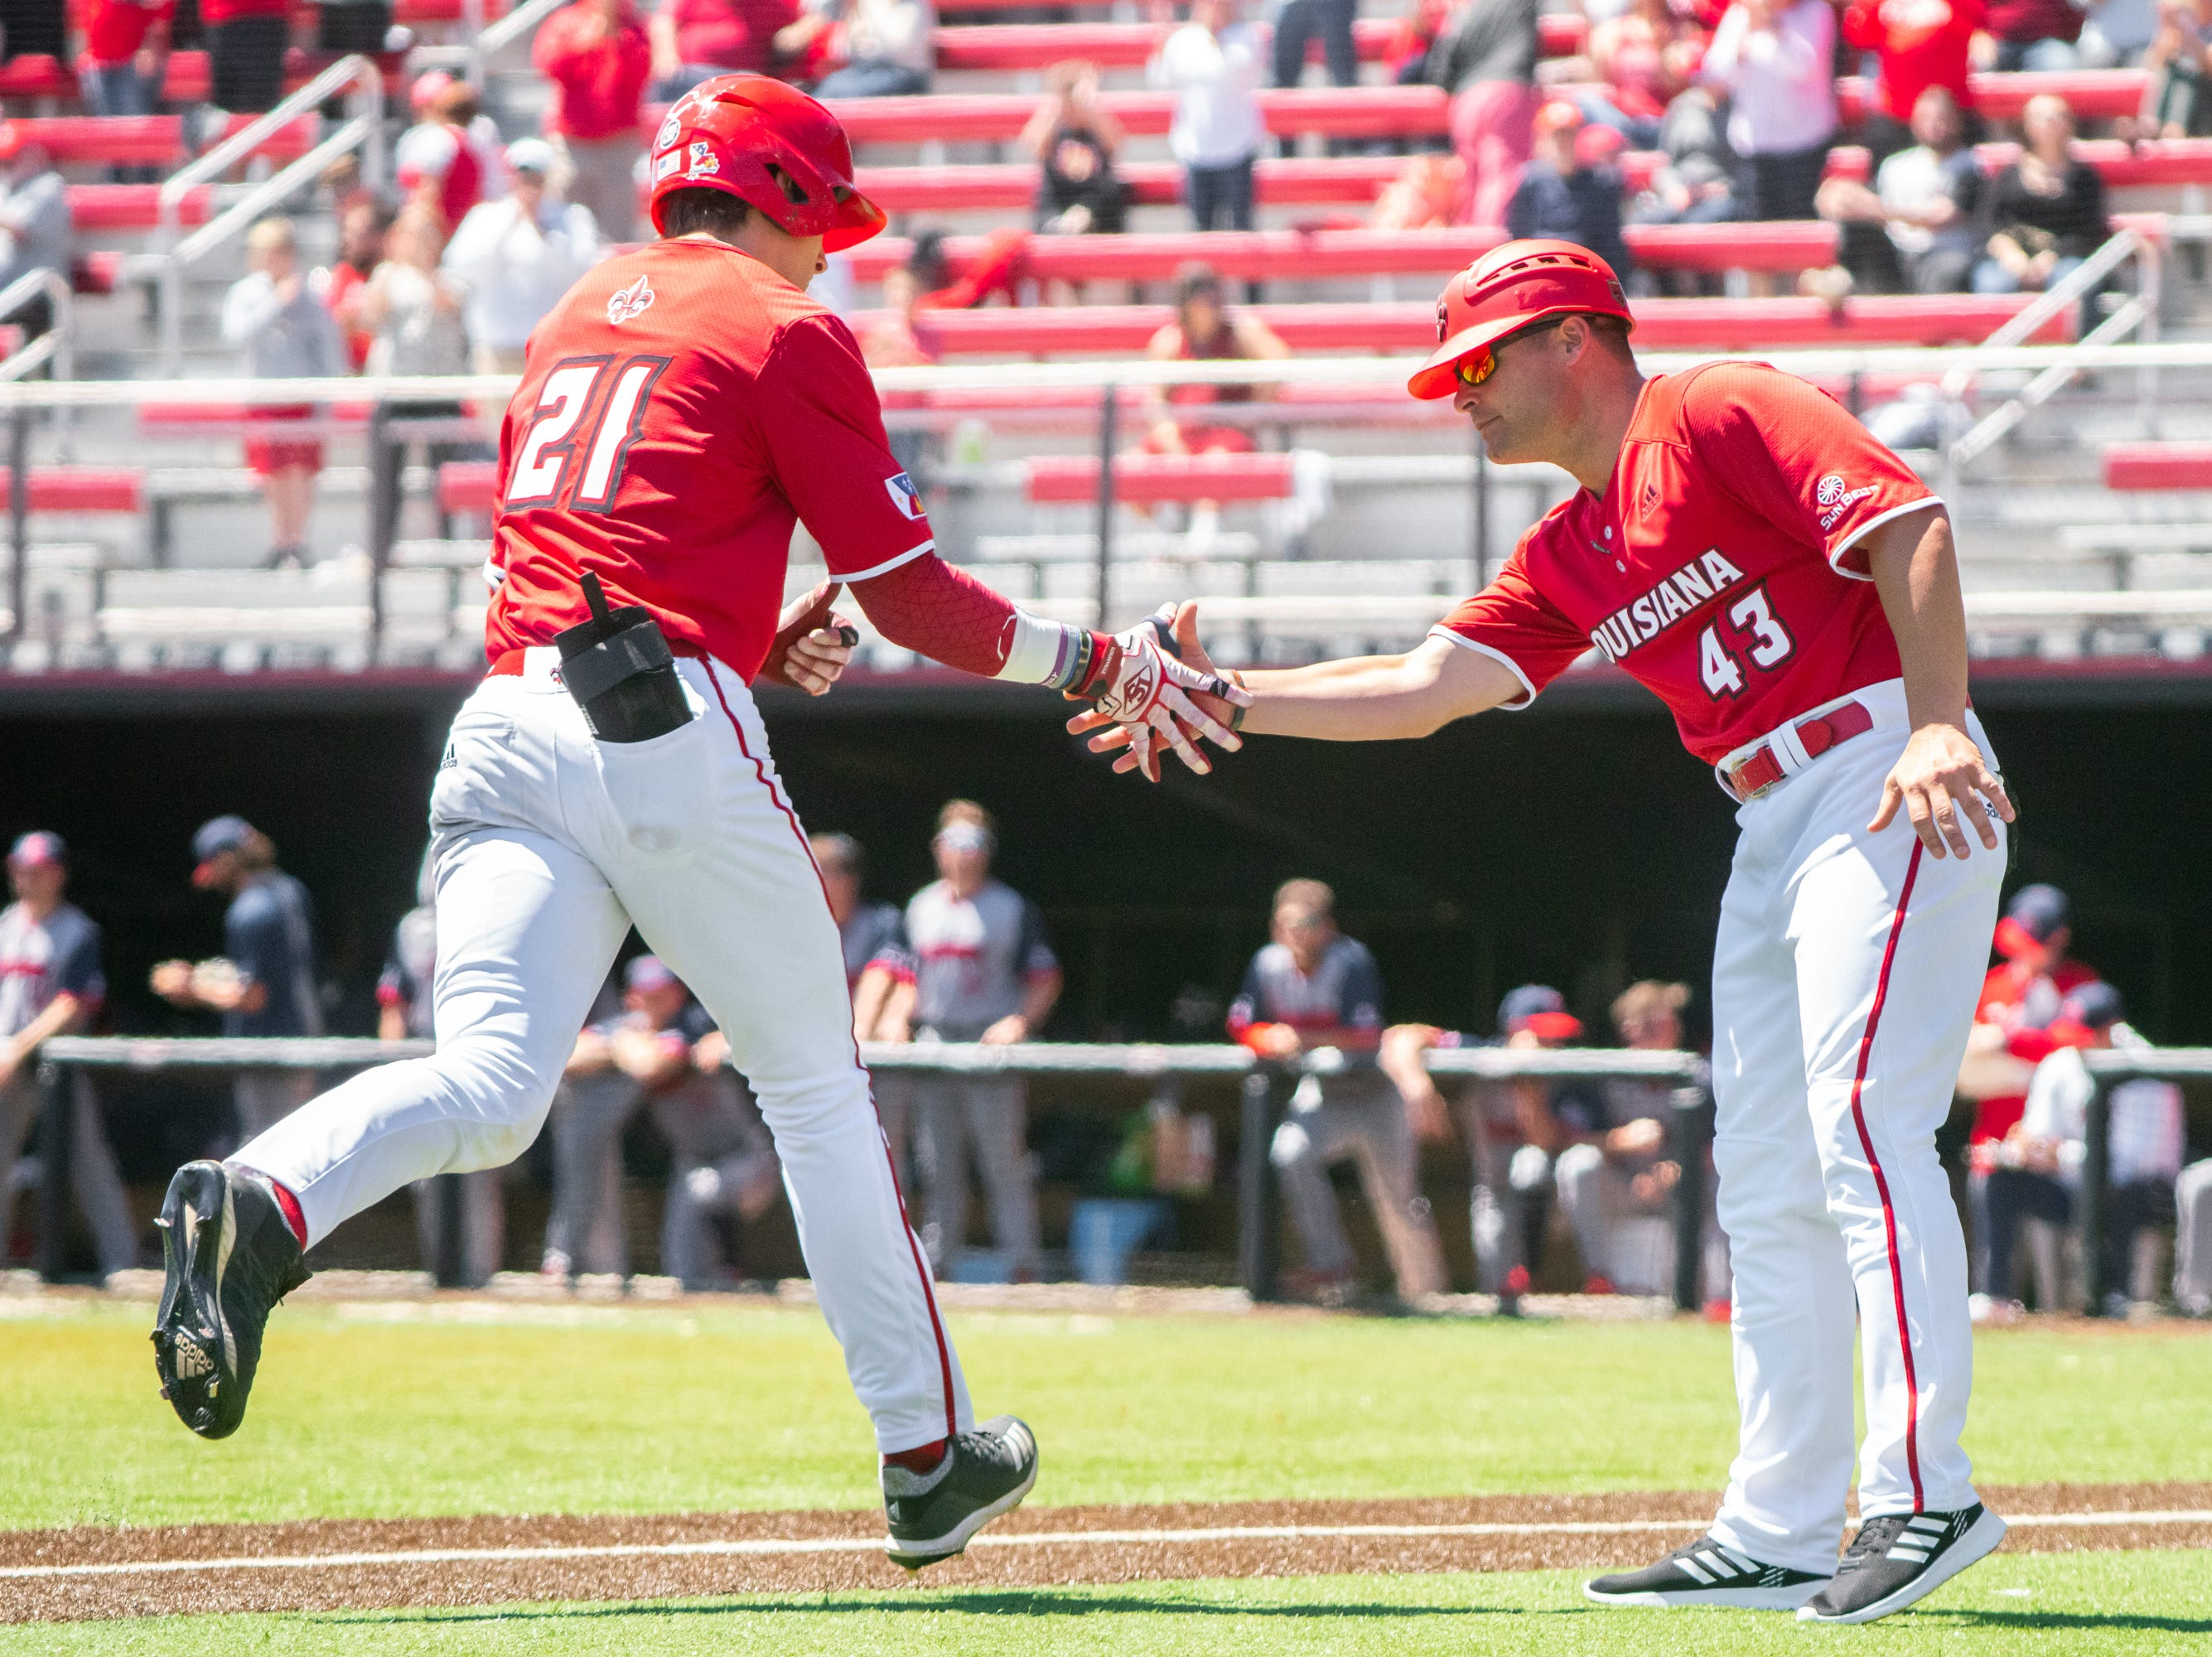 """UL's assistant coach Jake Wells (43) congratulates Orynn Veillon (21) after his homerun hit as the Ragin' Cajuns take on the South Alabama Jaguars at M.L. """"Tigue"""" Moore Field on Sunday, April 14, 2019."""